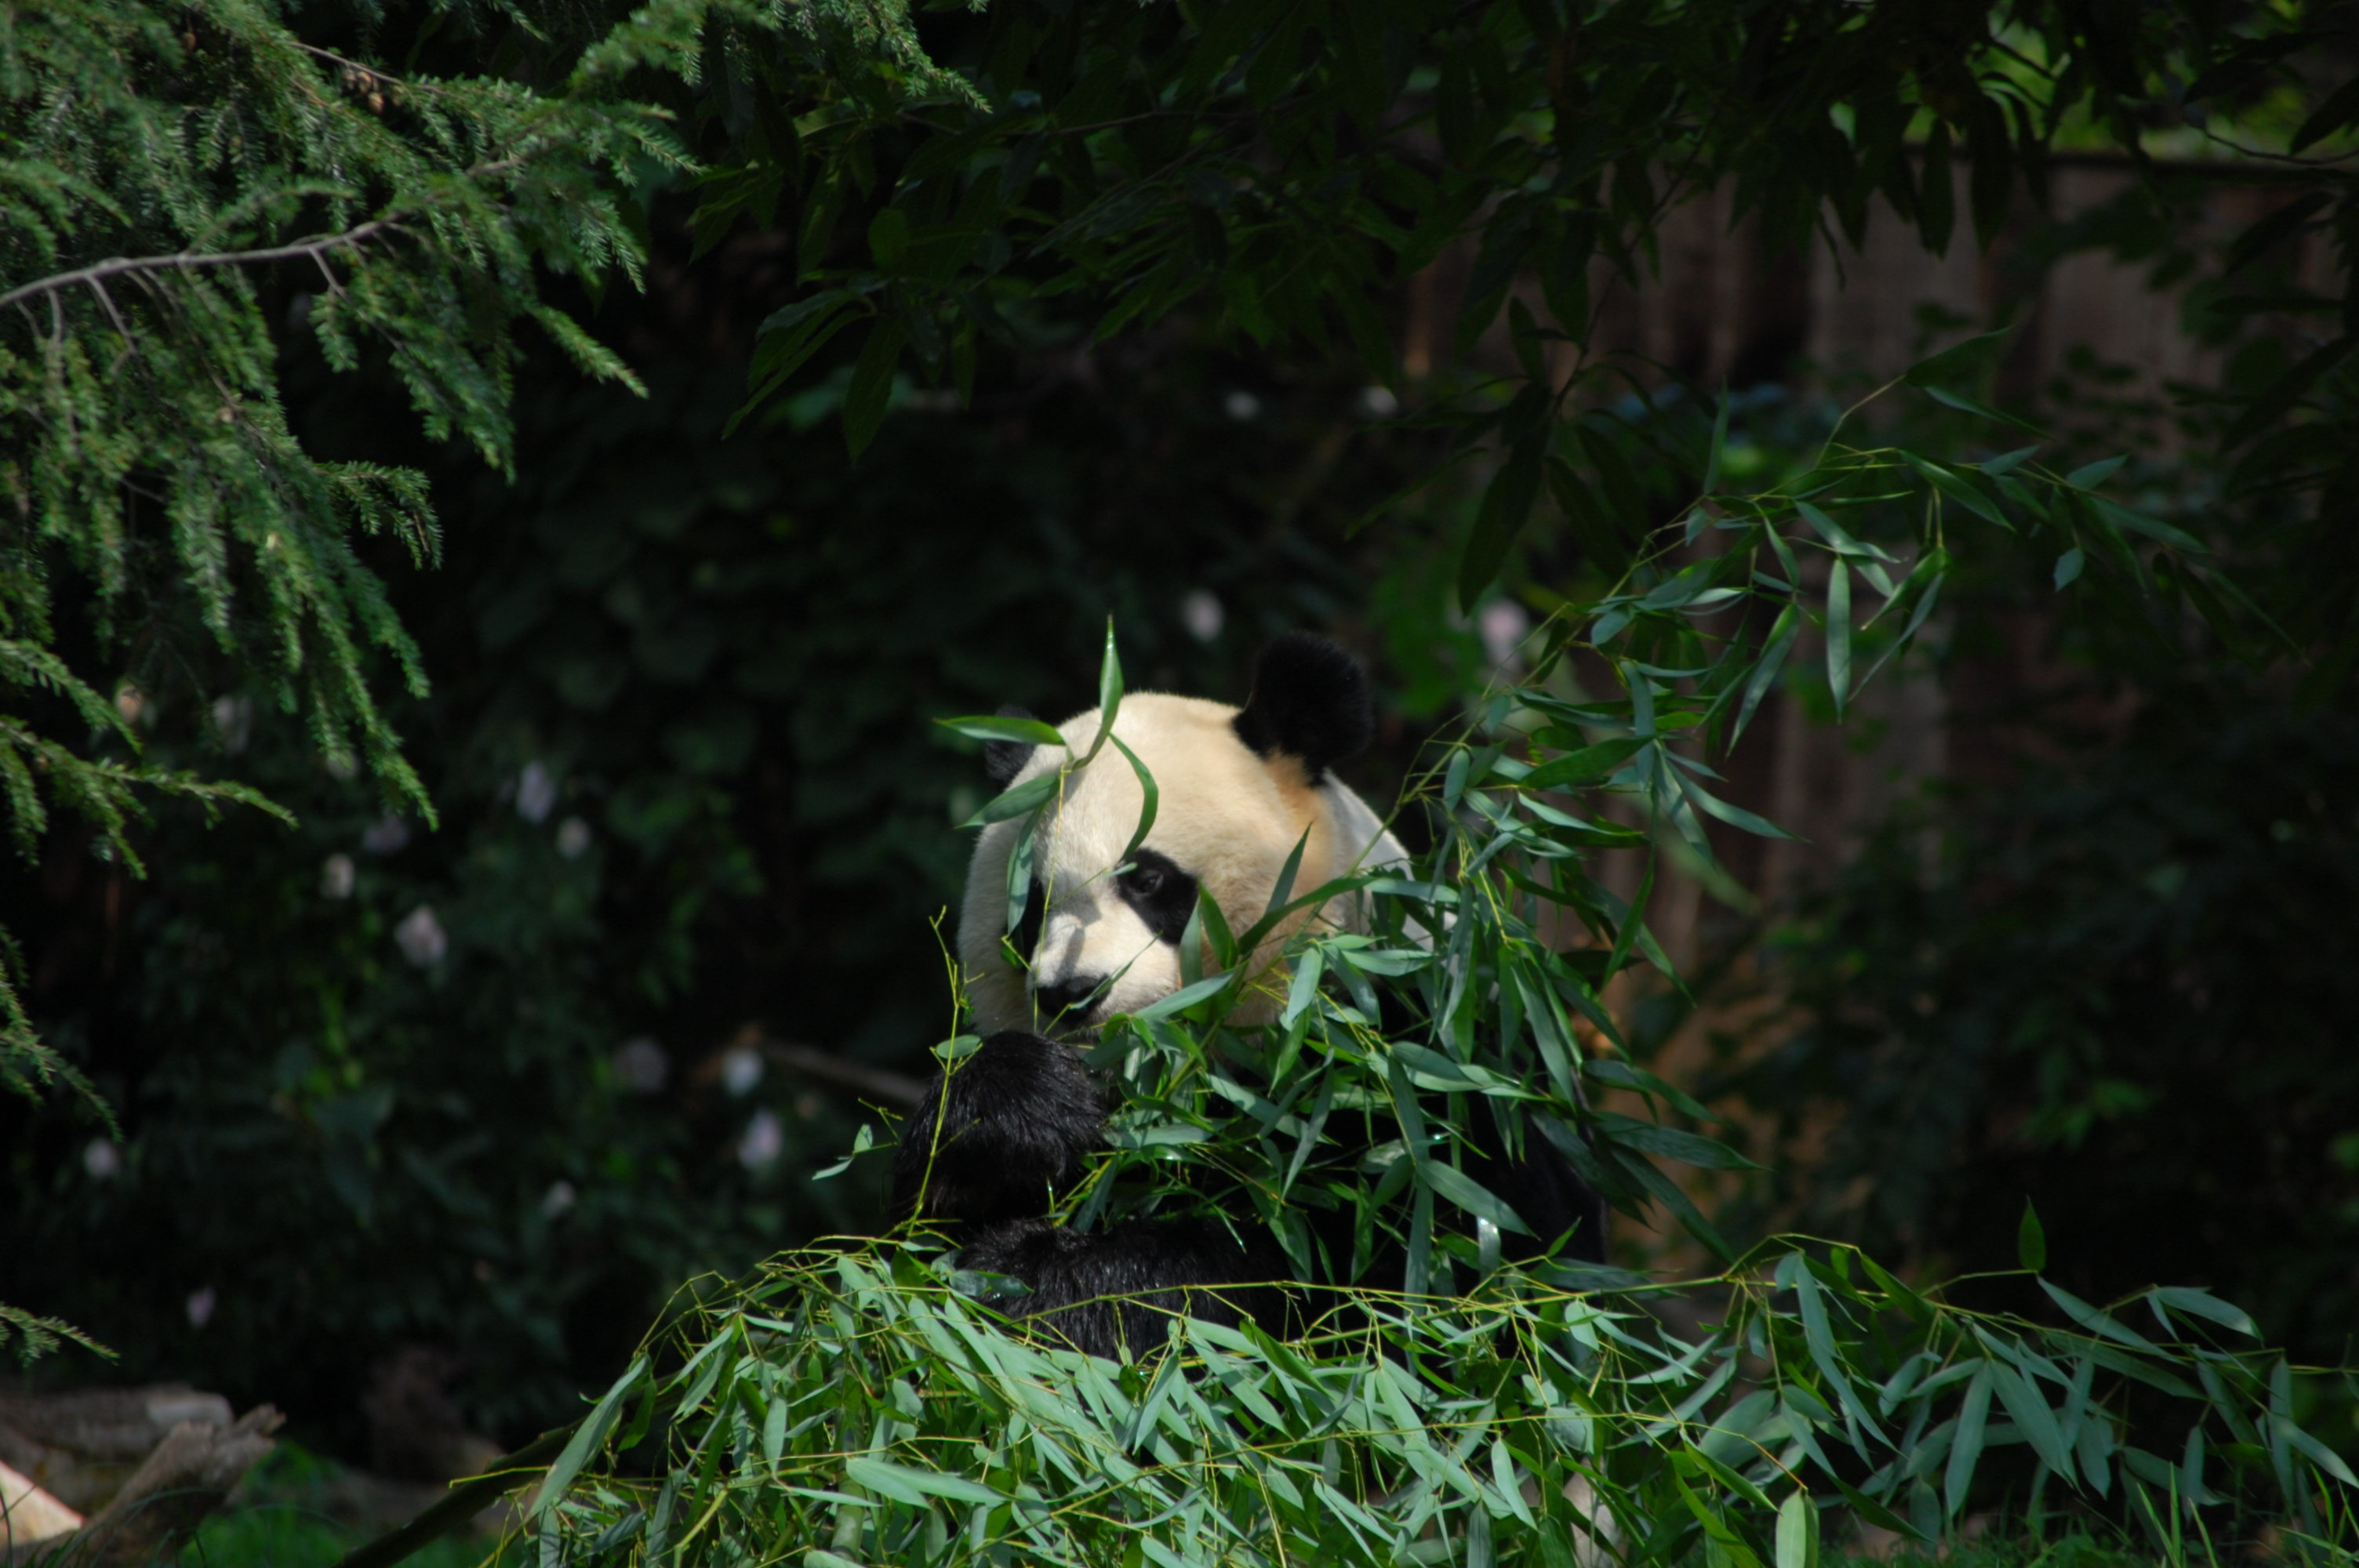 82558 download wallpaper Animals, Panda, Animal, Bamboo, Leaves screensavers and pictures for free